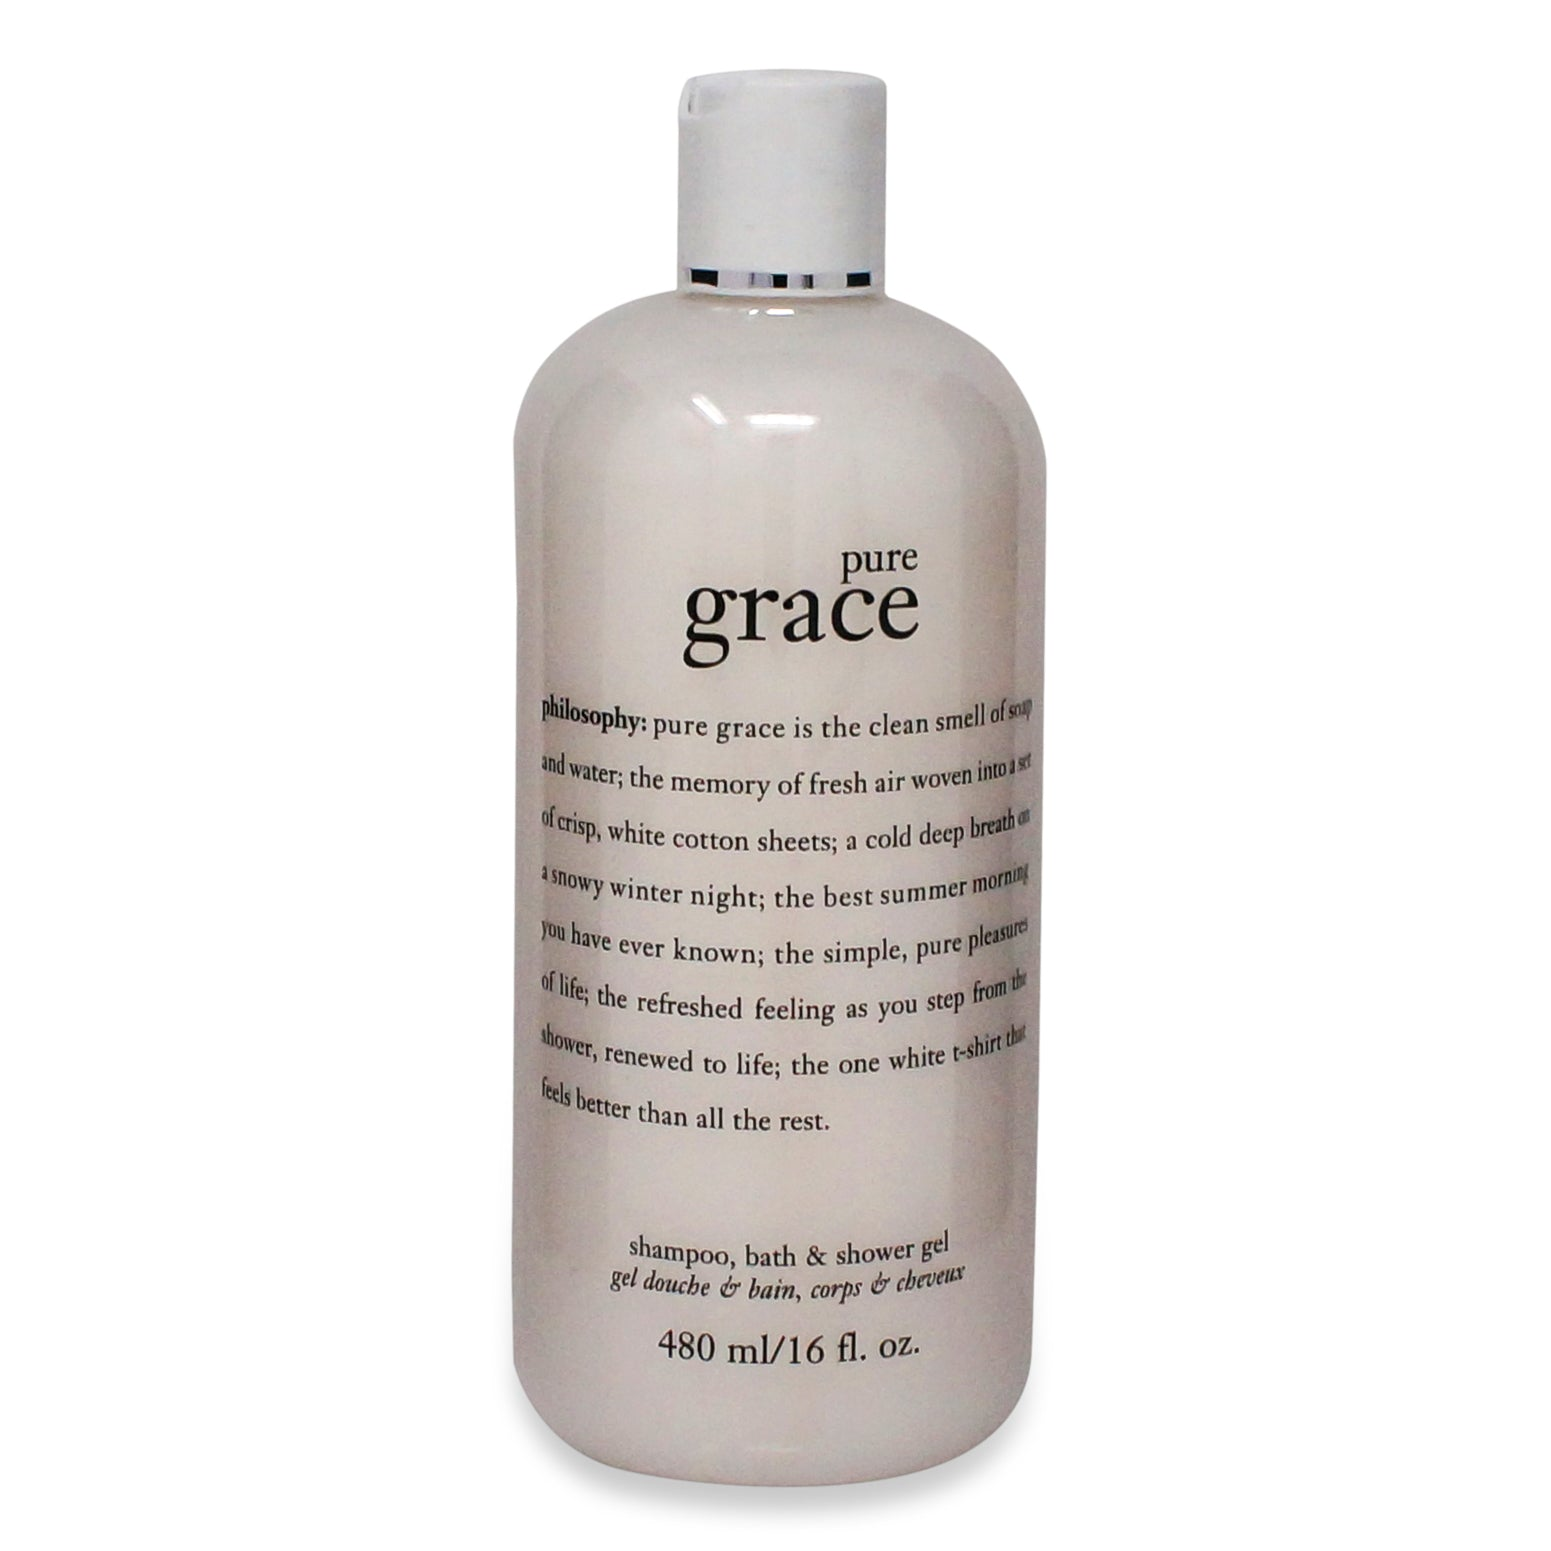 PHILOSOPHY ~ PURE GRACE ~ SHAMPOO, BATH & SHOWER GEL ~ 16OZ